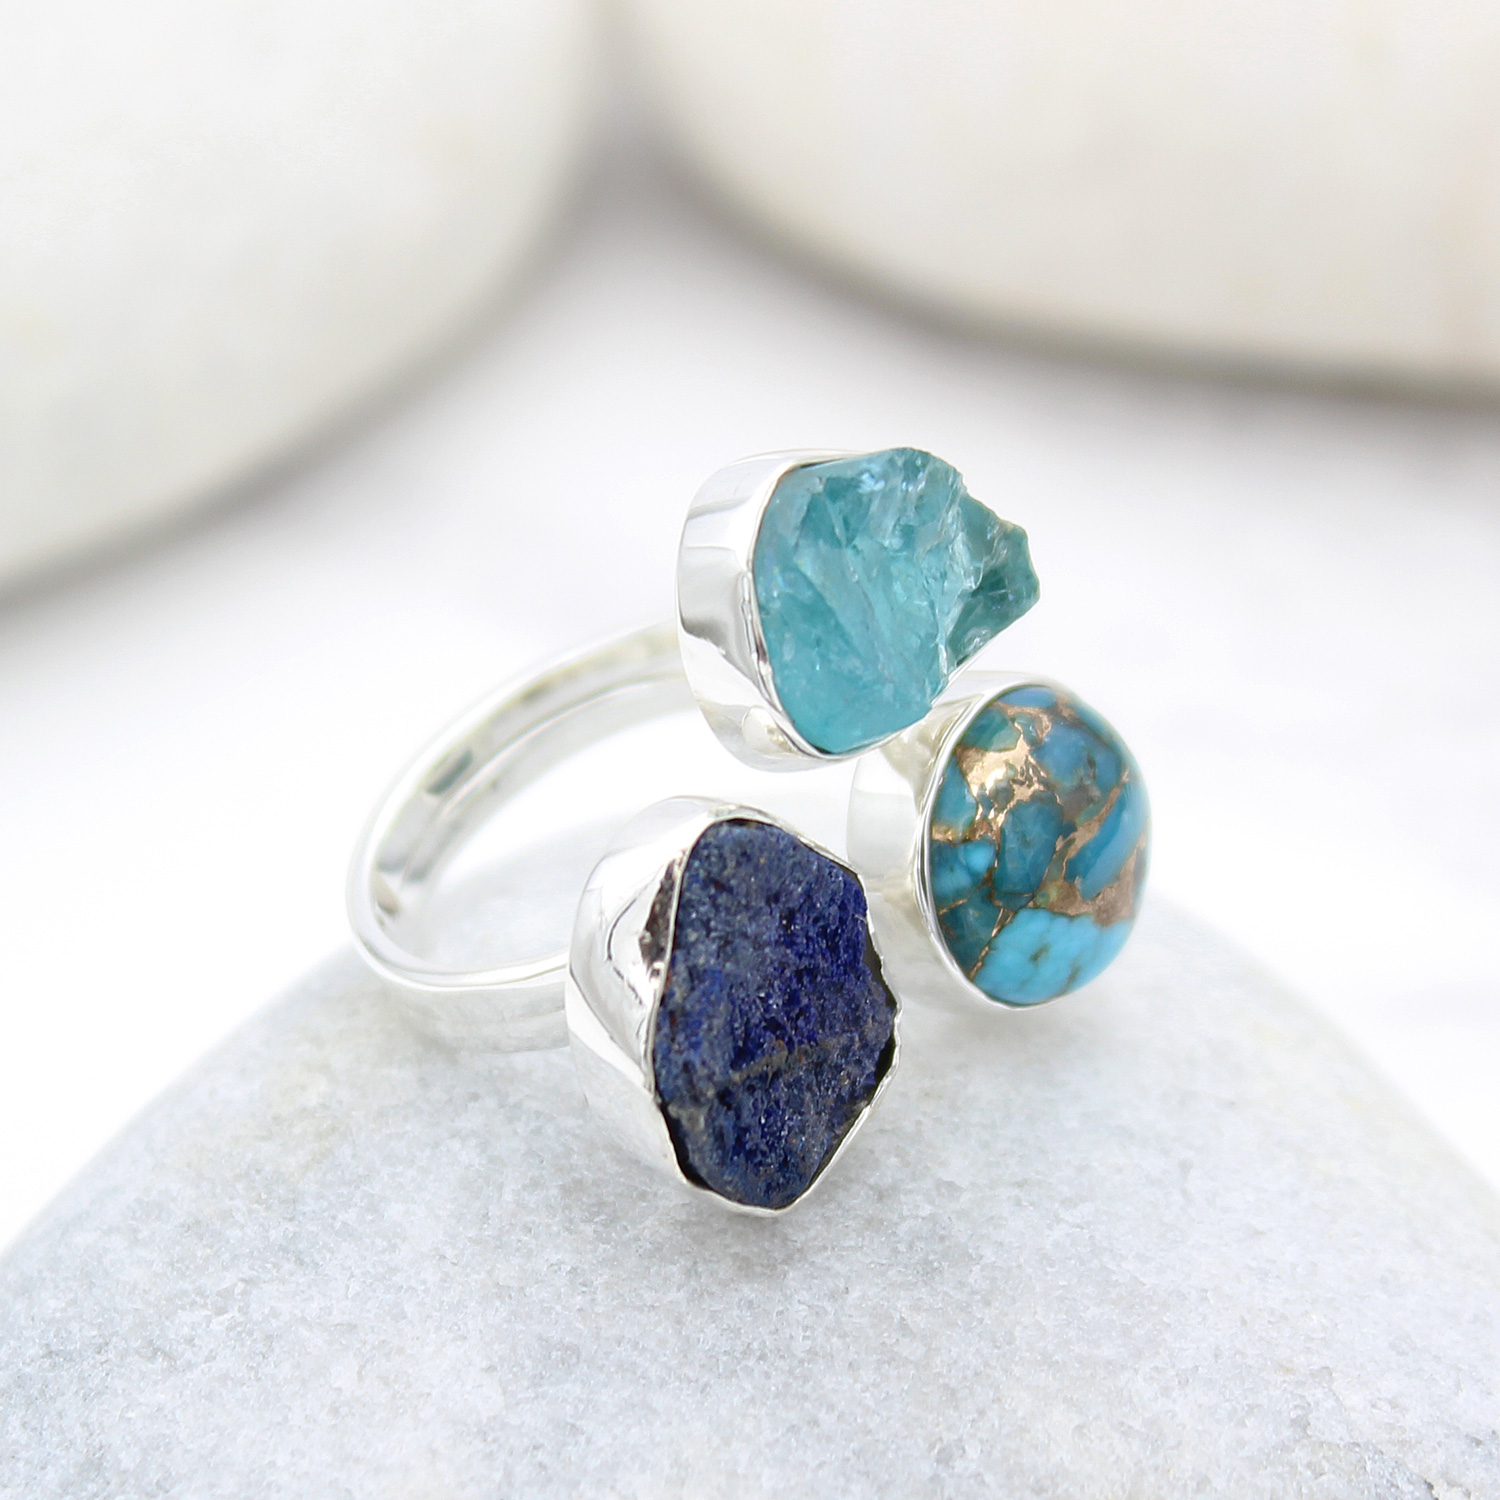 Apatite Turquoise And Azurite Gemstone Adjustable